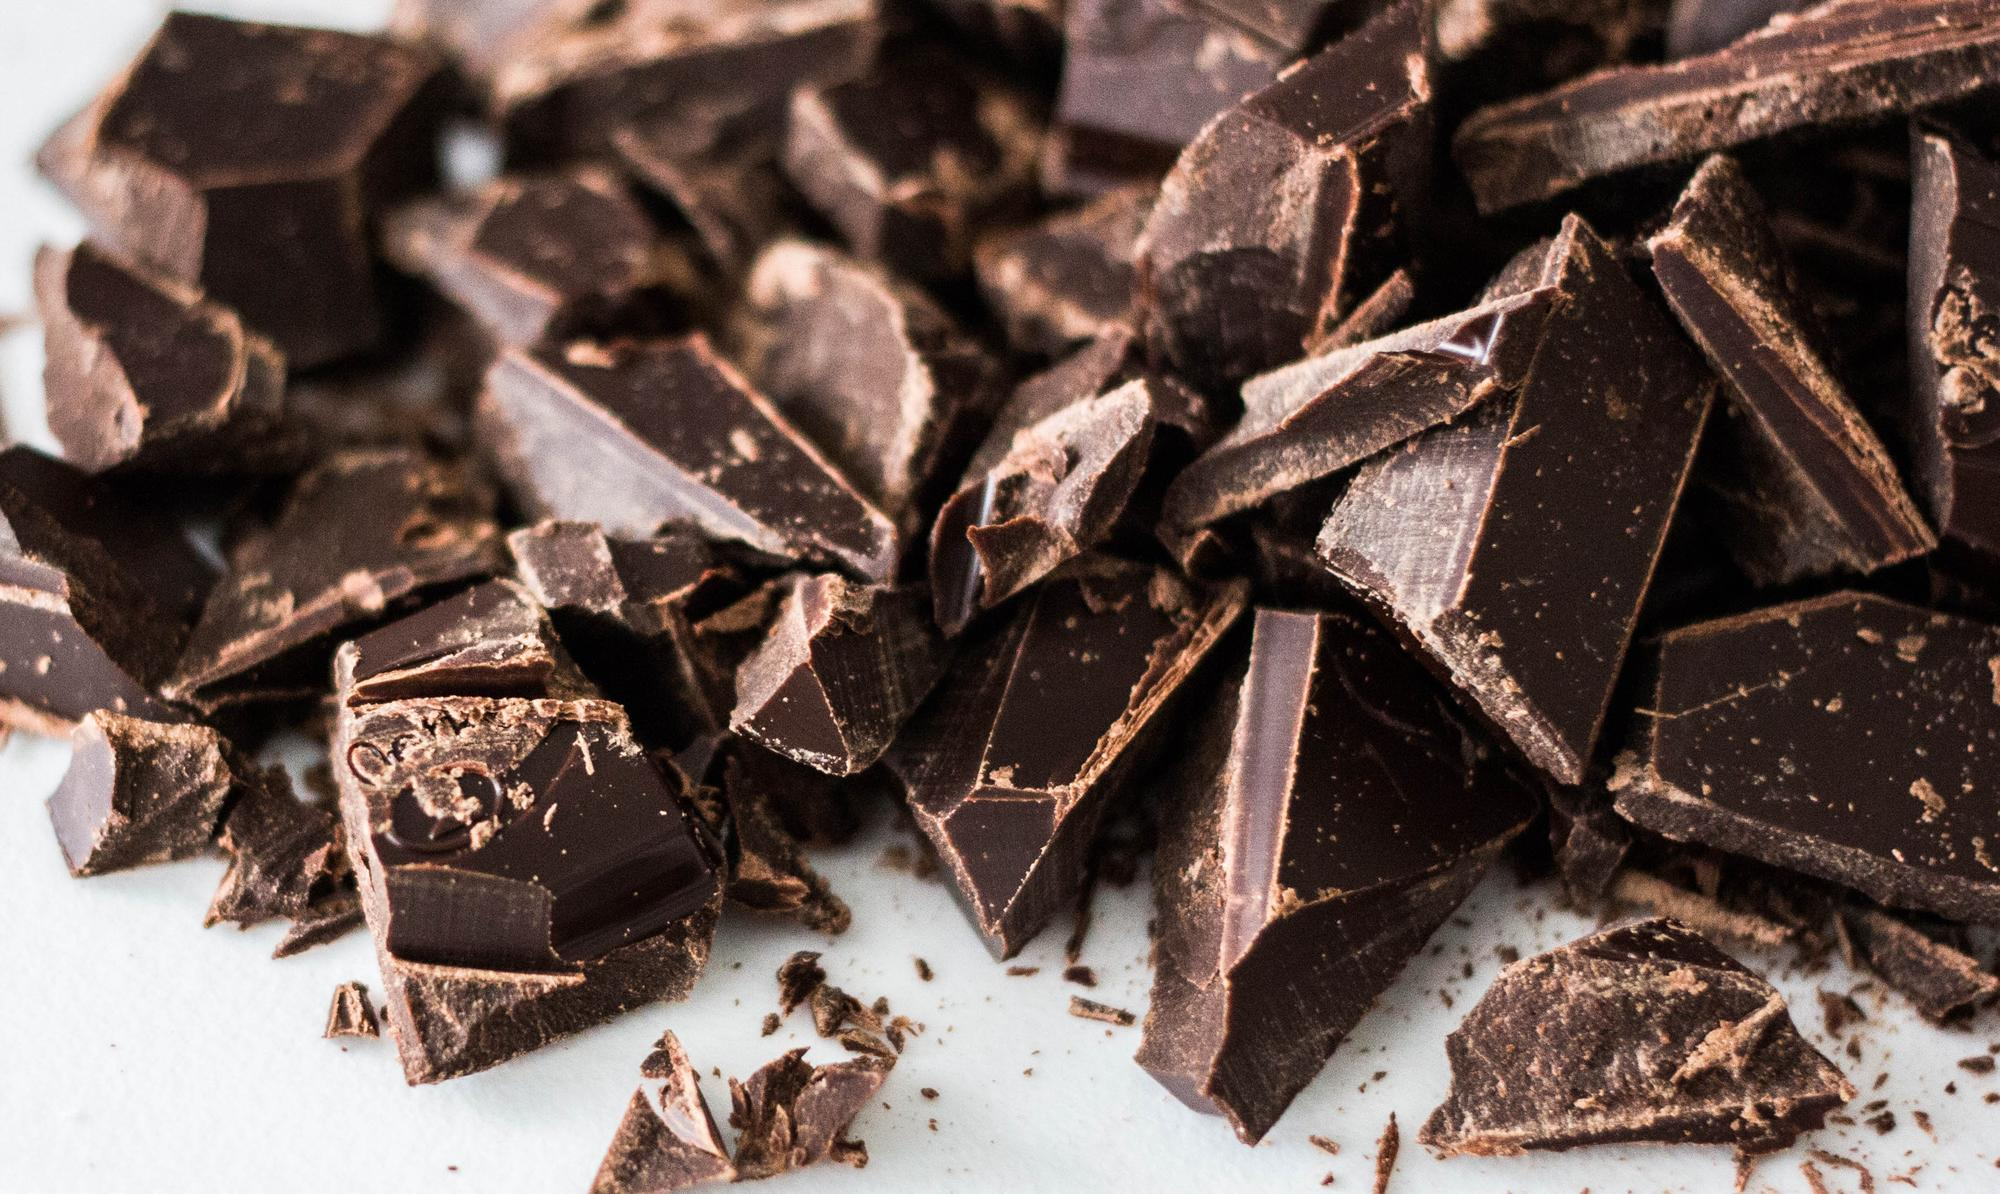 Dark Chocolate Bar Chunks Chopped